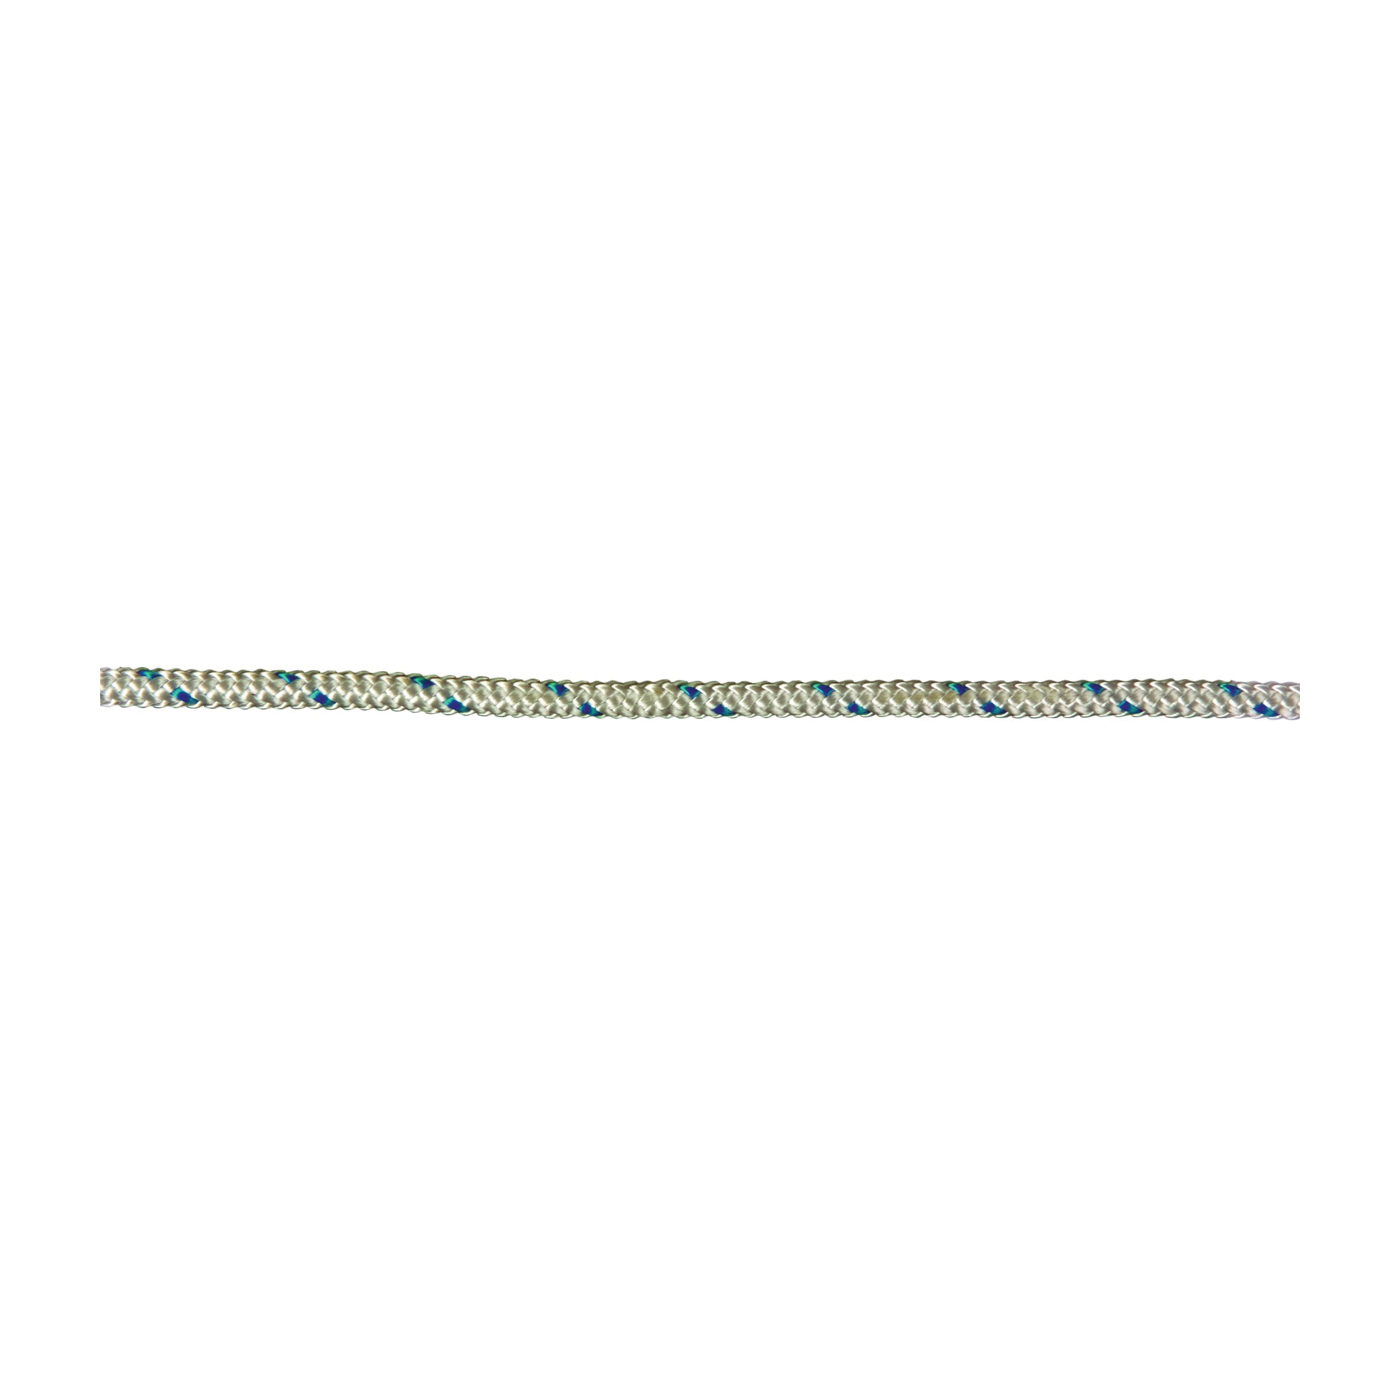 Picture of Ben-Mor 60011 Diamond Braided Rope, 1/4 in, 150 ft L, Polyester, Blue/White